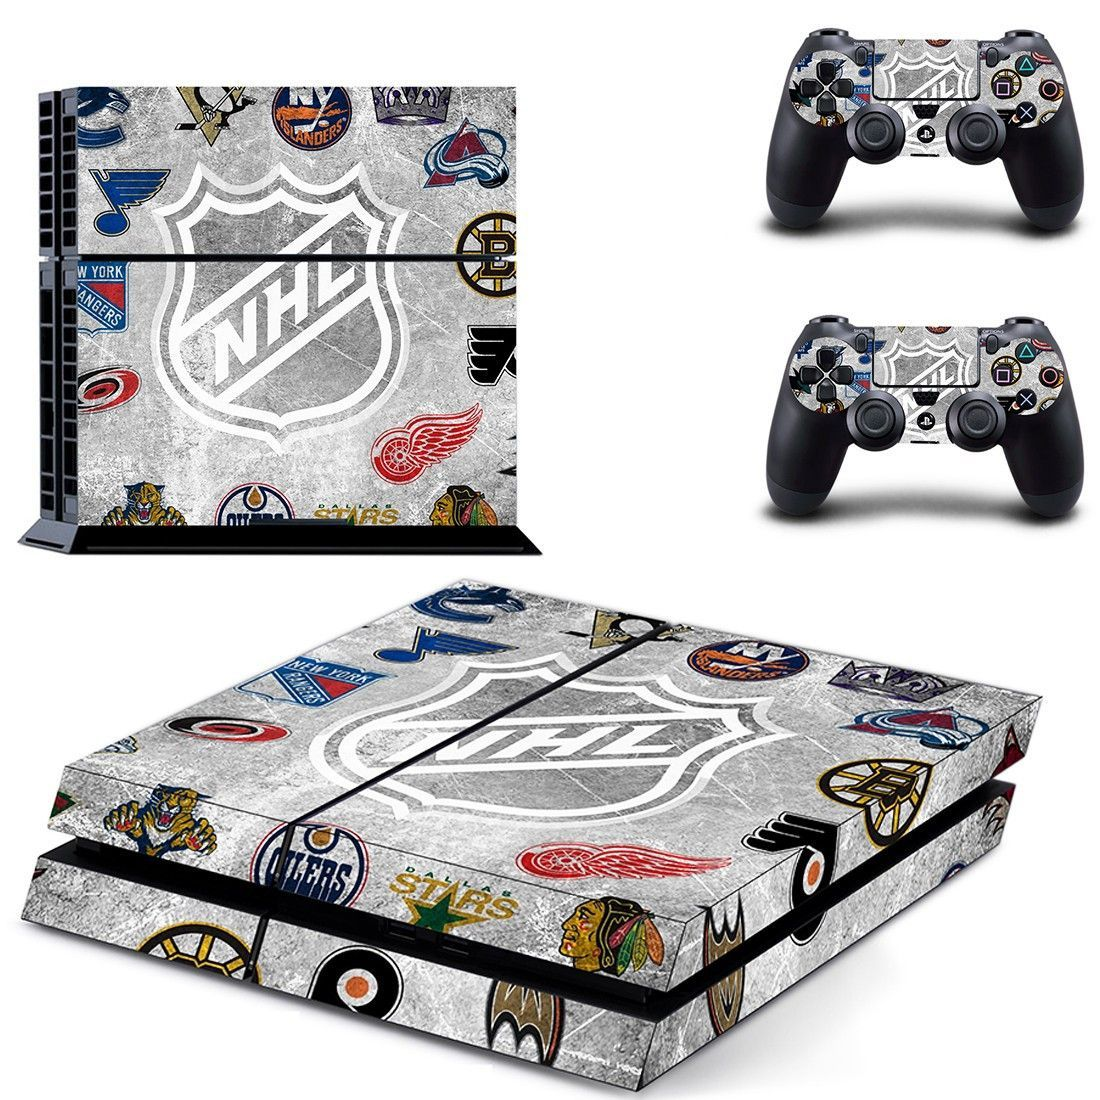 Hockey Nhl Ps4 Skin Decal For Console And Controllers Ps4 Skins Ps4 Skins Stickers Ps4 Skins Decals